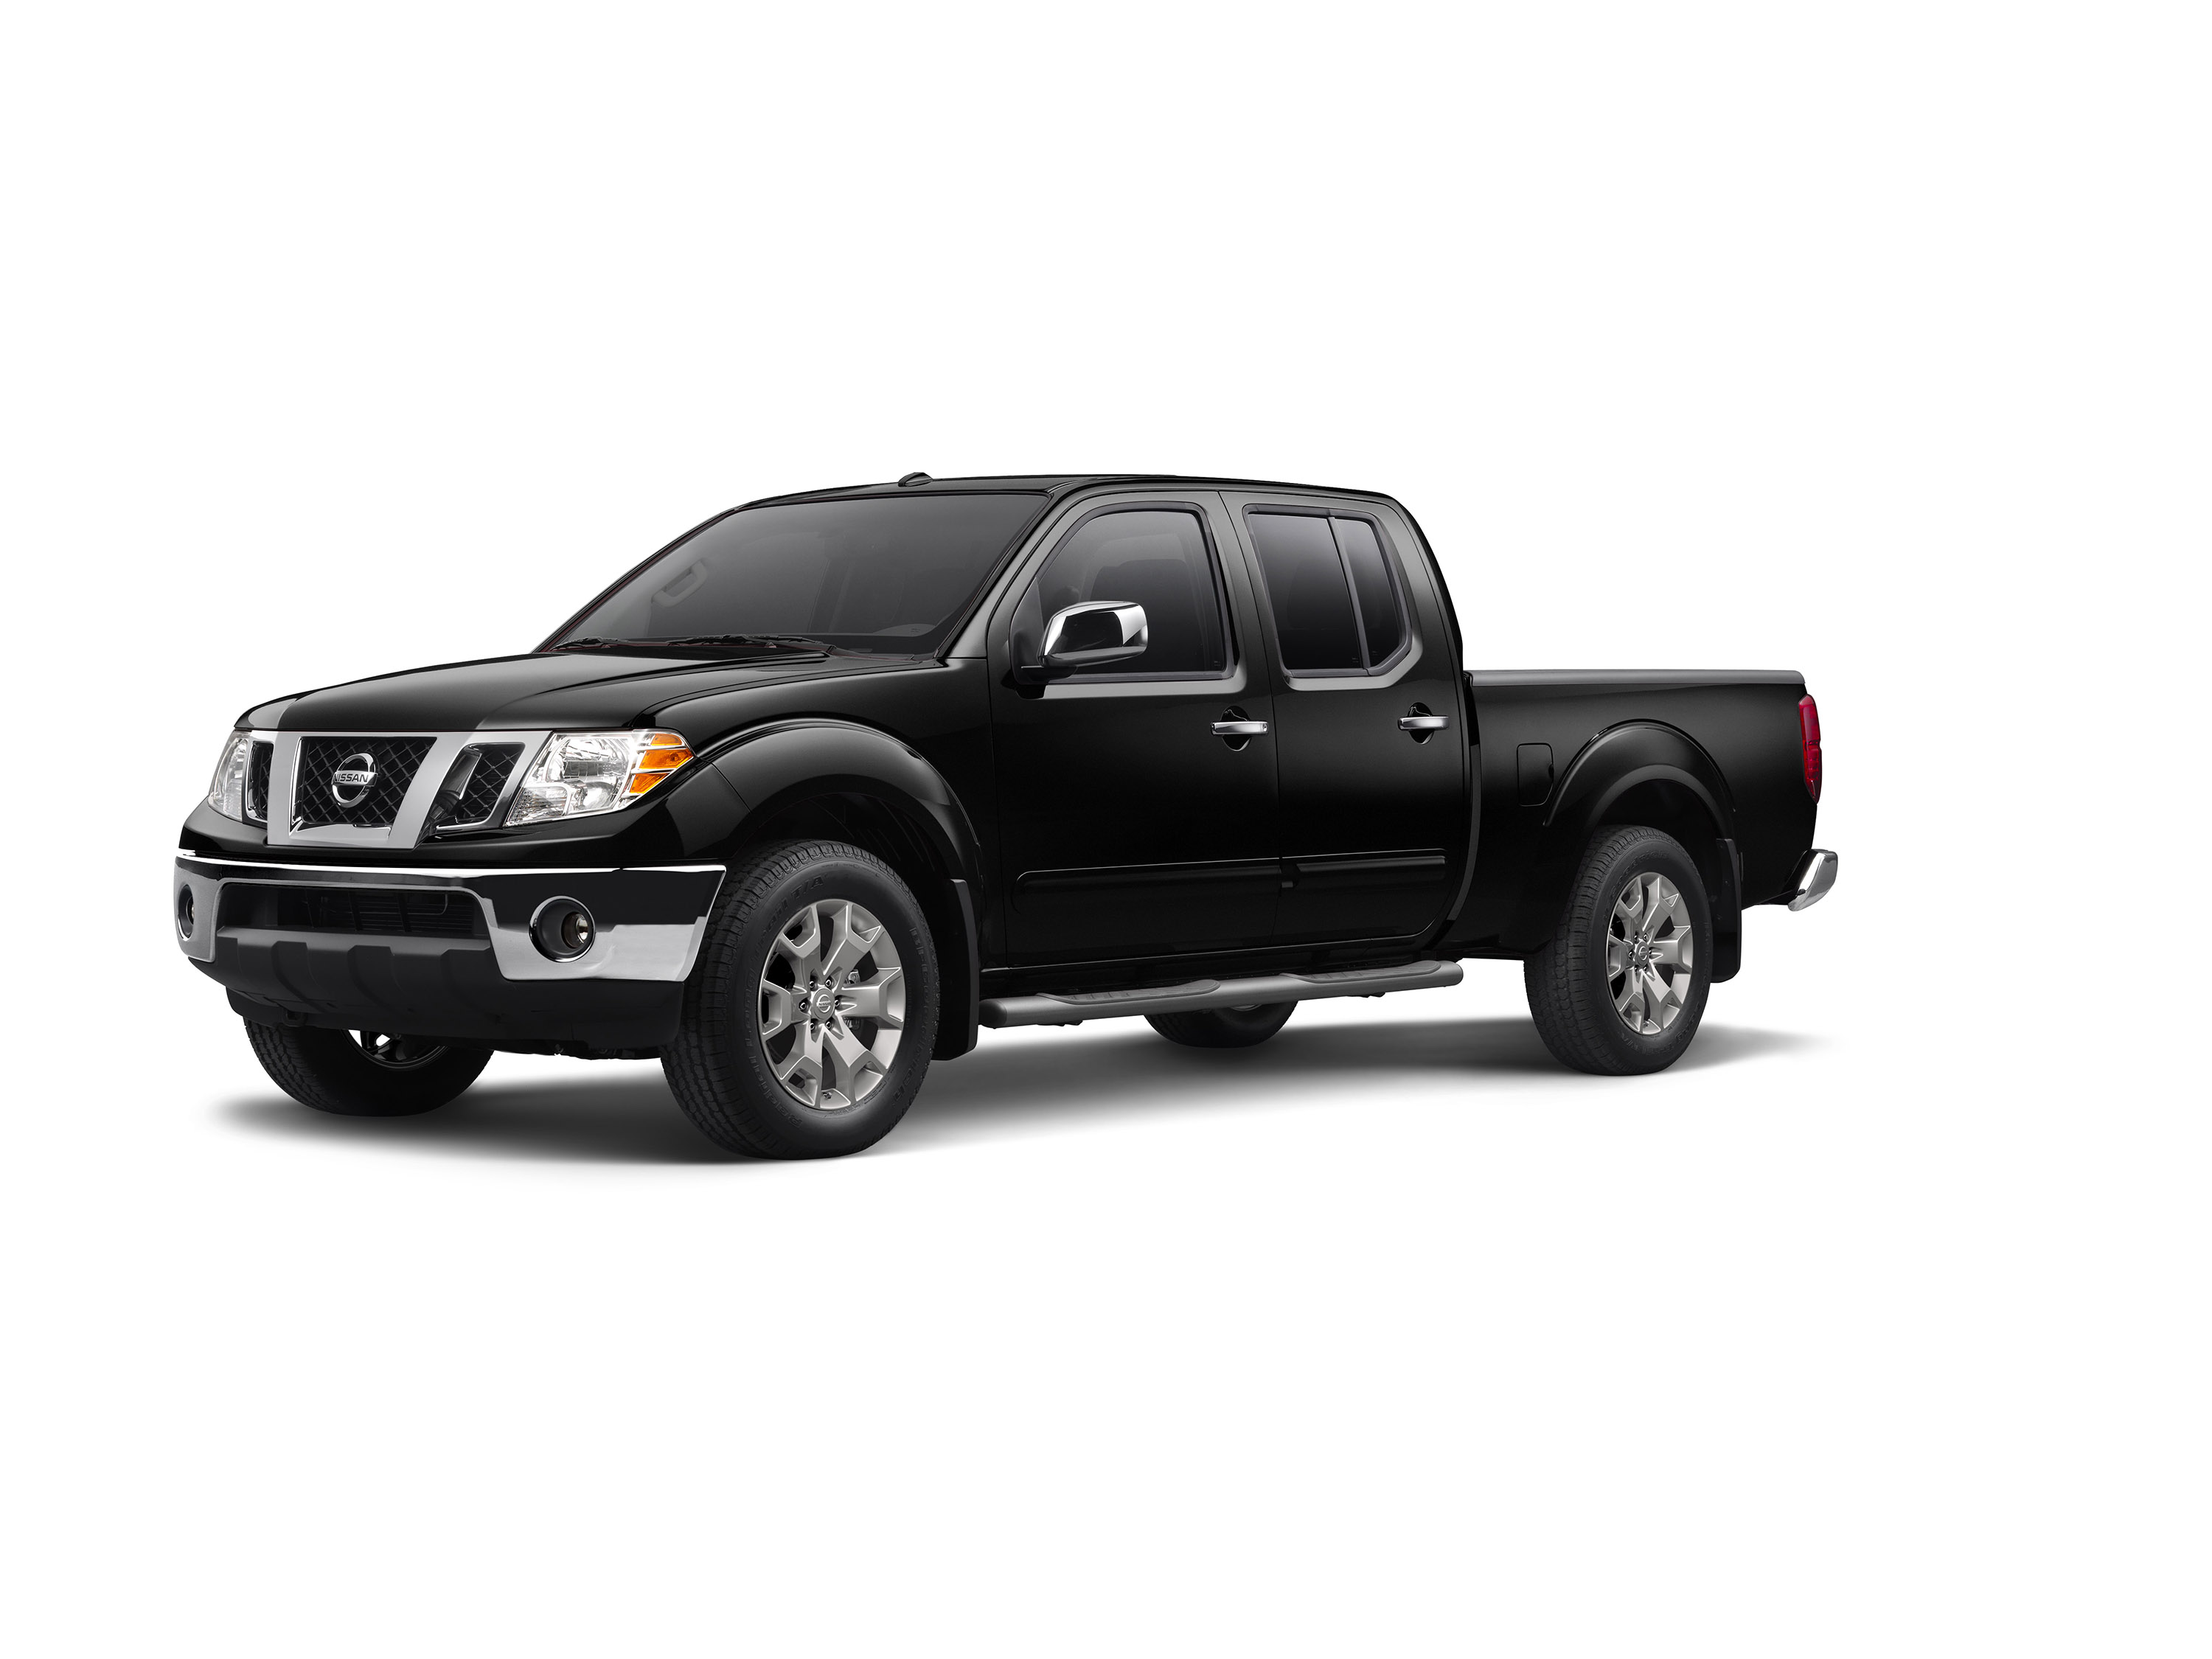 2017 nissan frontier styling review the car connection. Black Bedroom Furniture Sets. Home Design Ideas